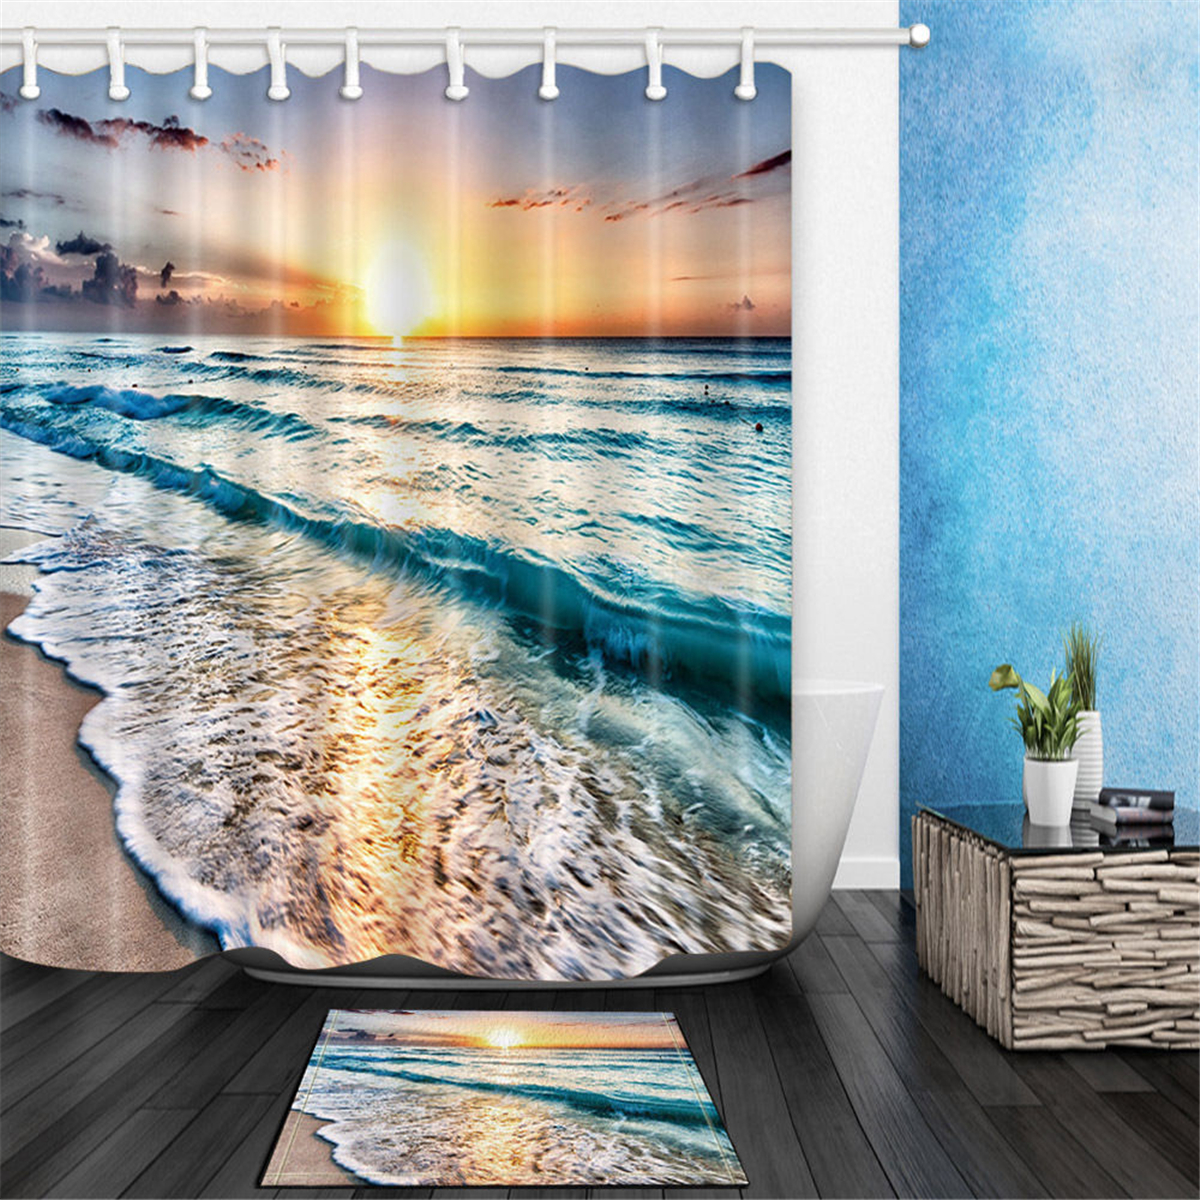 Us 9 46 43 Off Bathroom Shower Curtain Bath Mat Top Selling Ocean Nautical Coastal Beach Sunset Bathroom Fabric Shower Curtain Set With Hook In